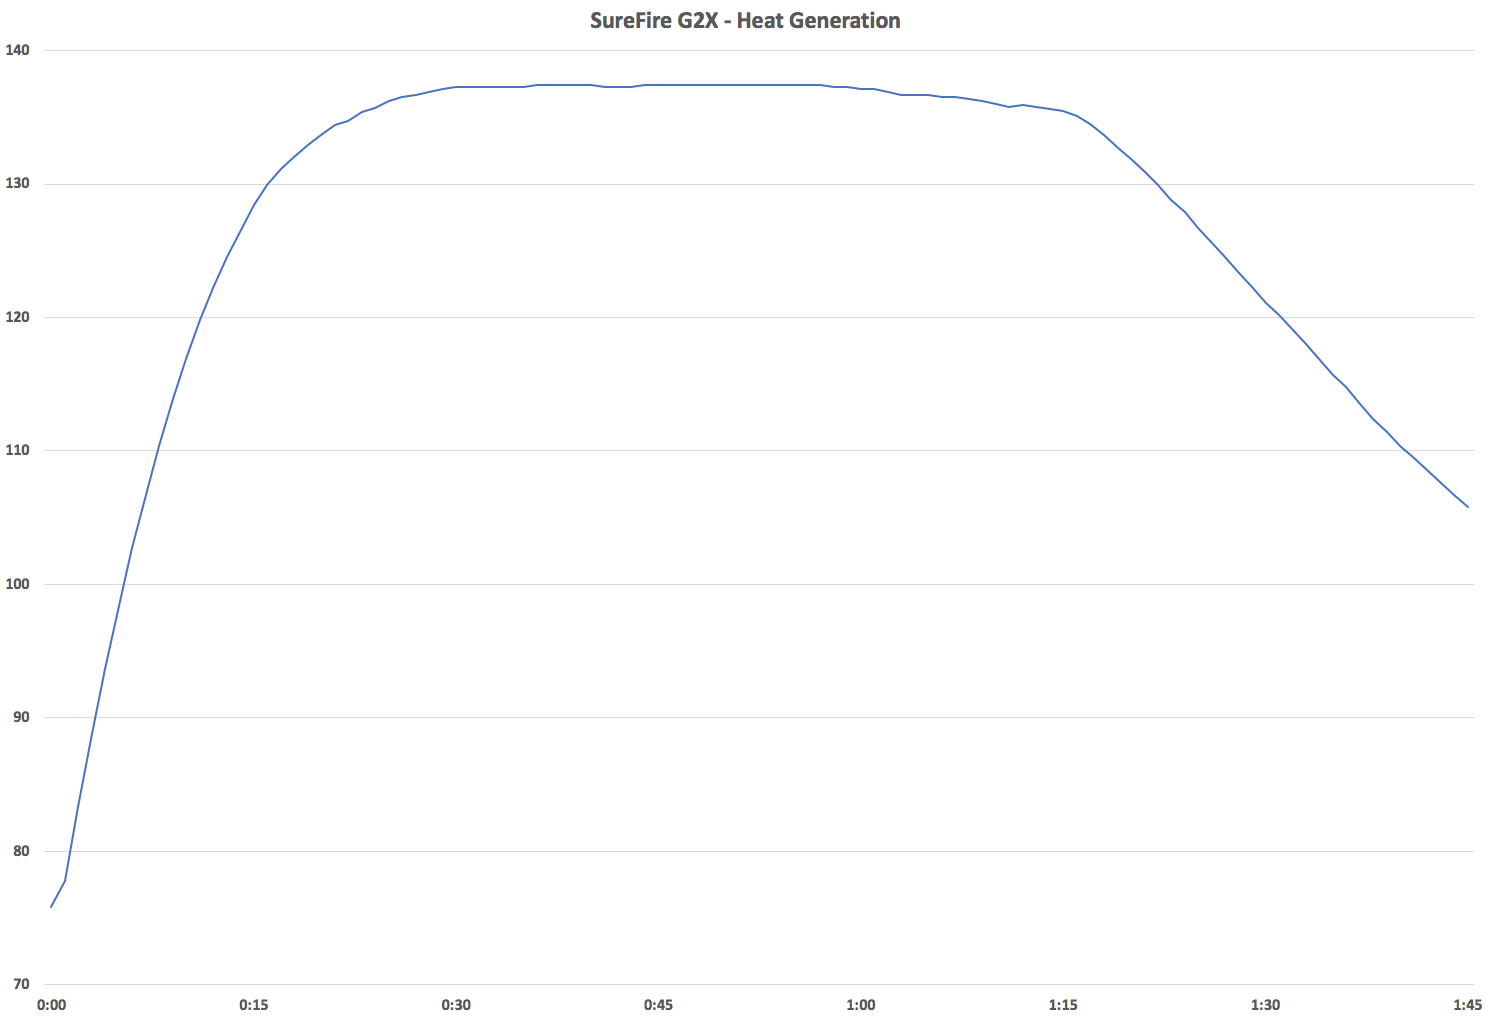 SureFire G2X Teperature OVer Time